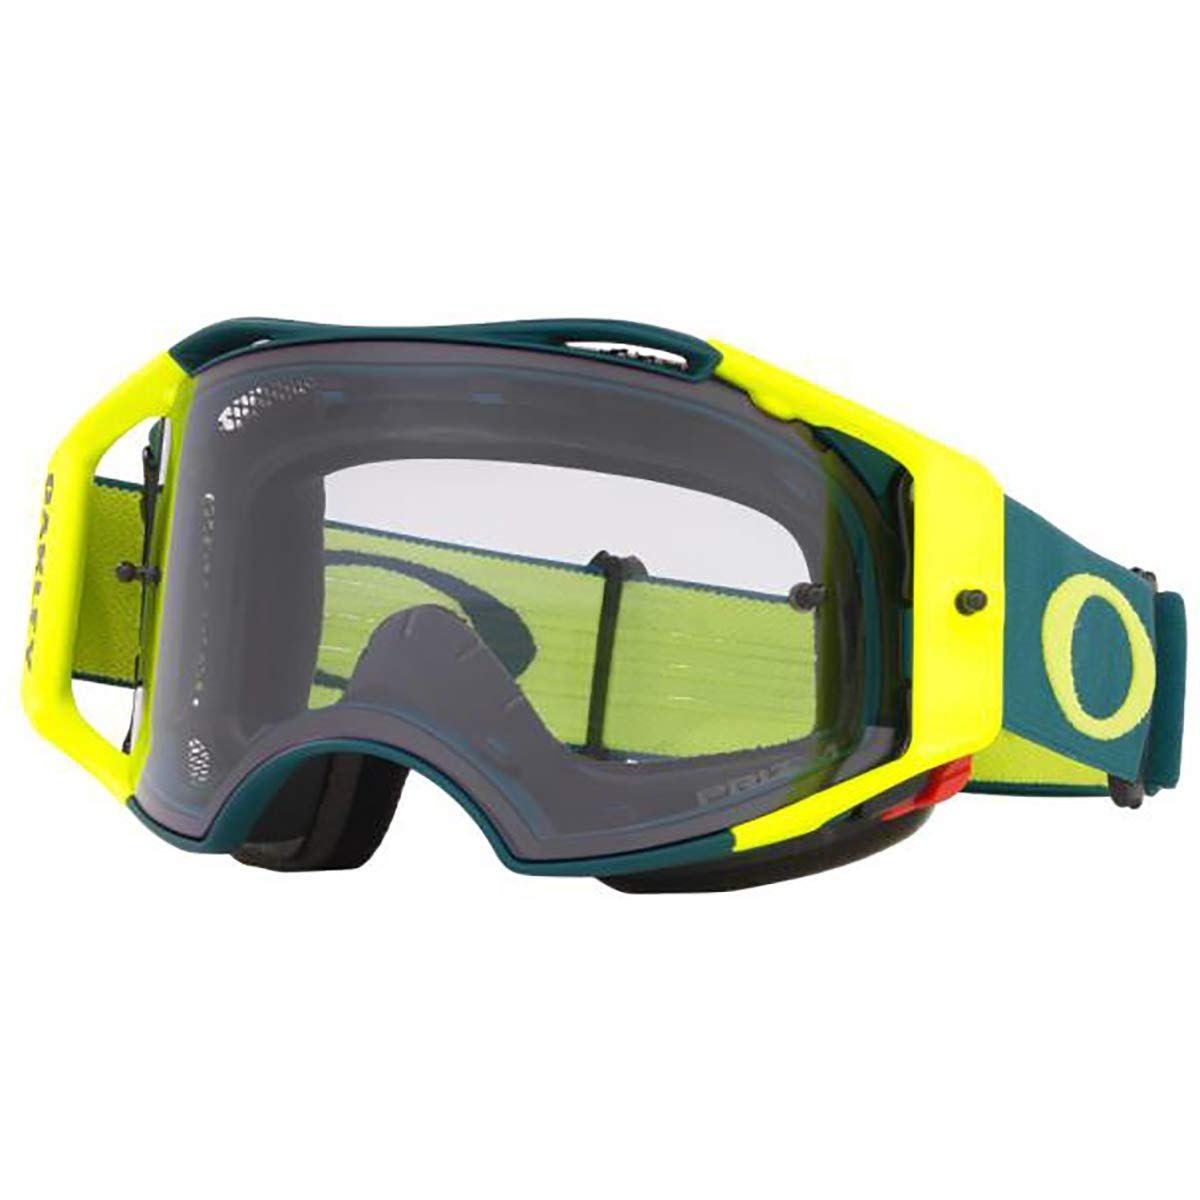 Oakley Airbrake Men's MTB Off-Road Cycling Goggles - Balsam Retina/Prizm Low Light/One Size